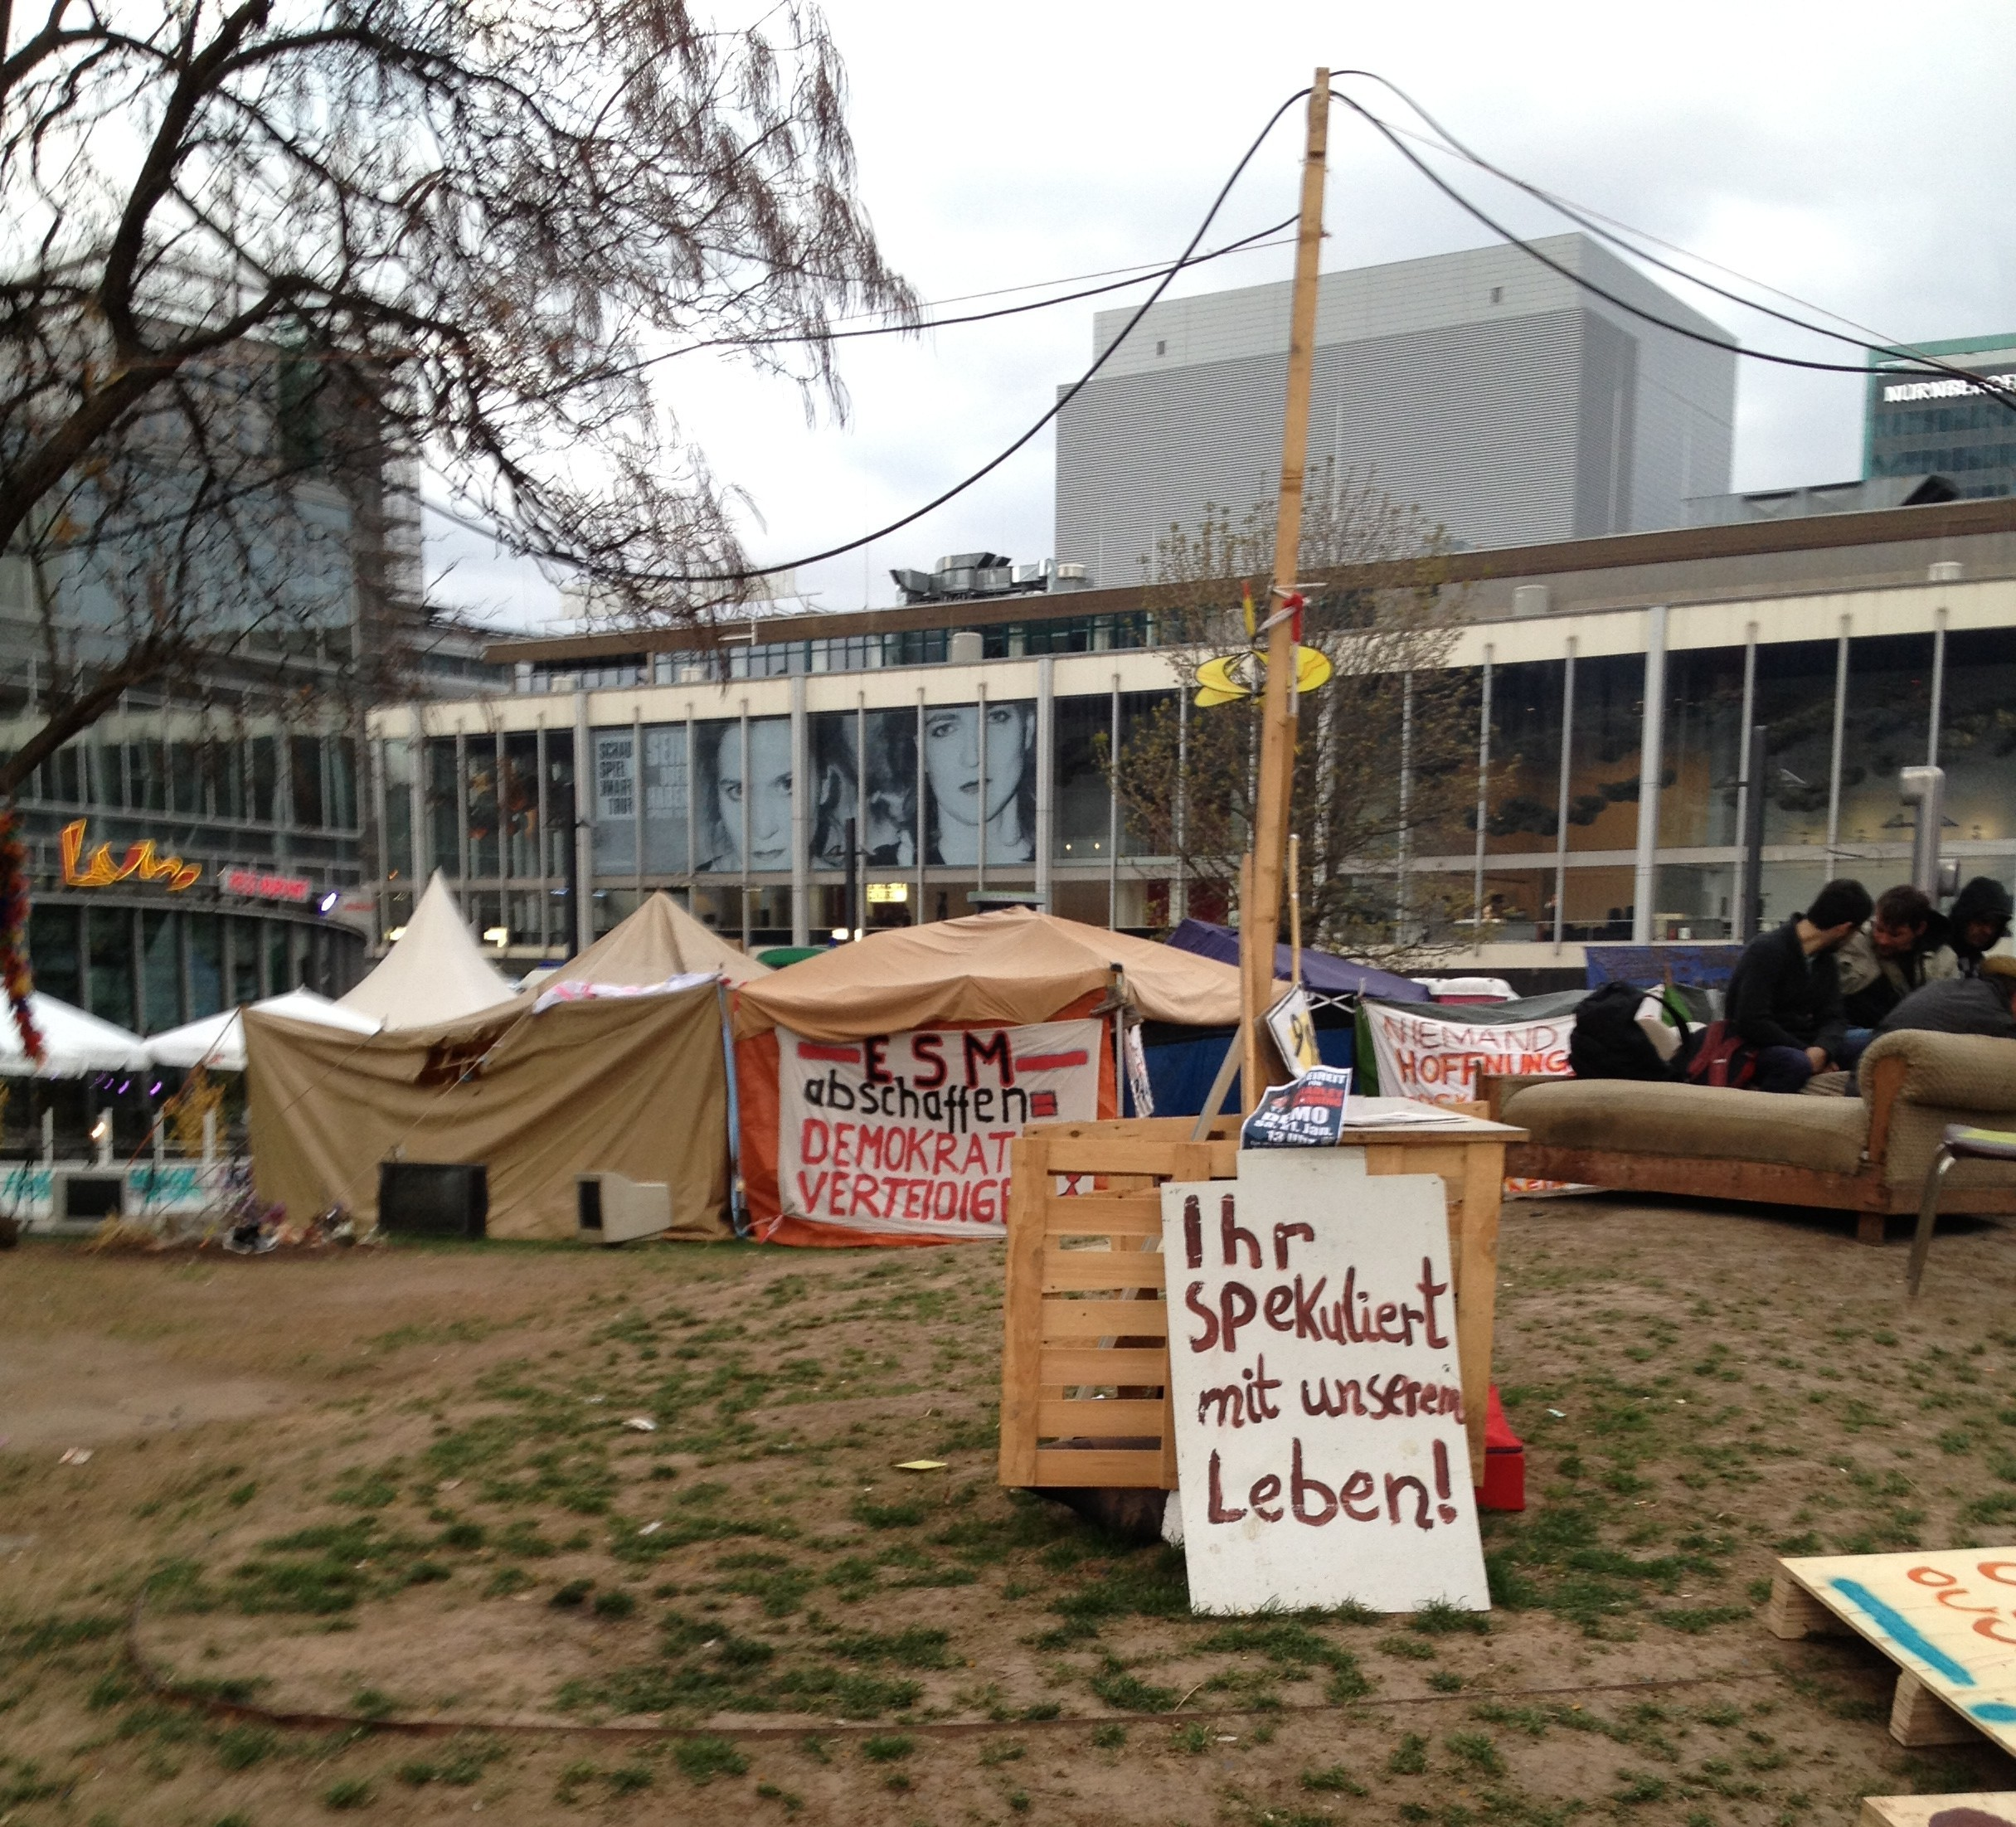 Occupy Camp in Frankfurt am Tag der M31 Demo